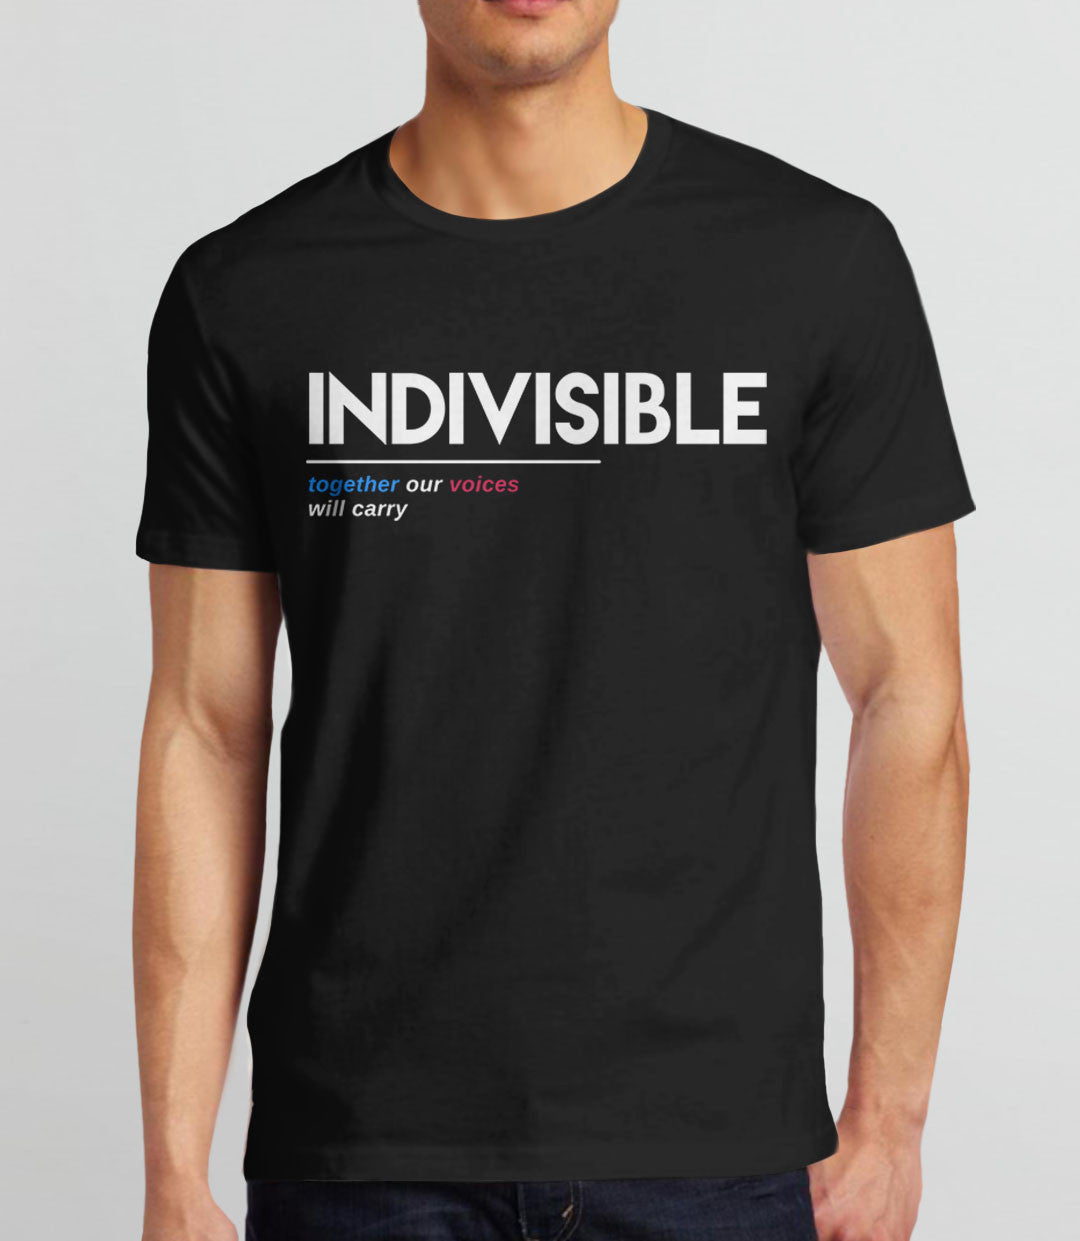 Indivisible t-shirt: together our voices will carry - mens tee